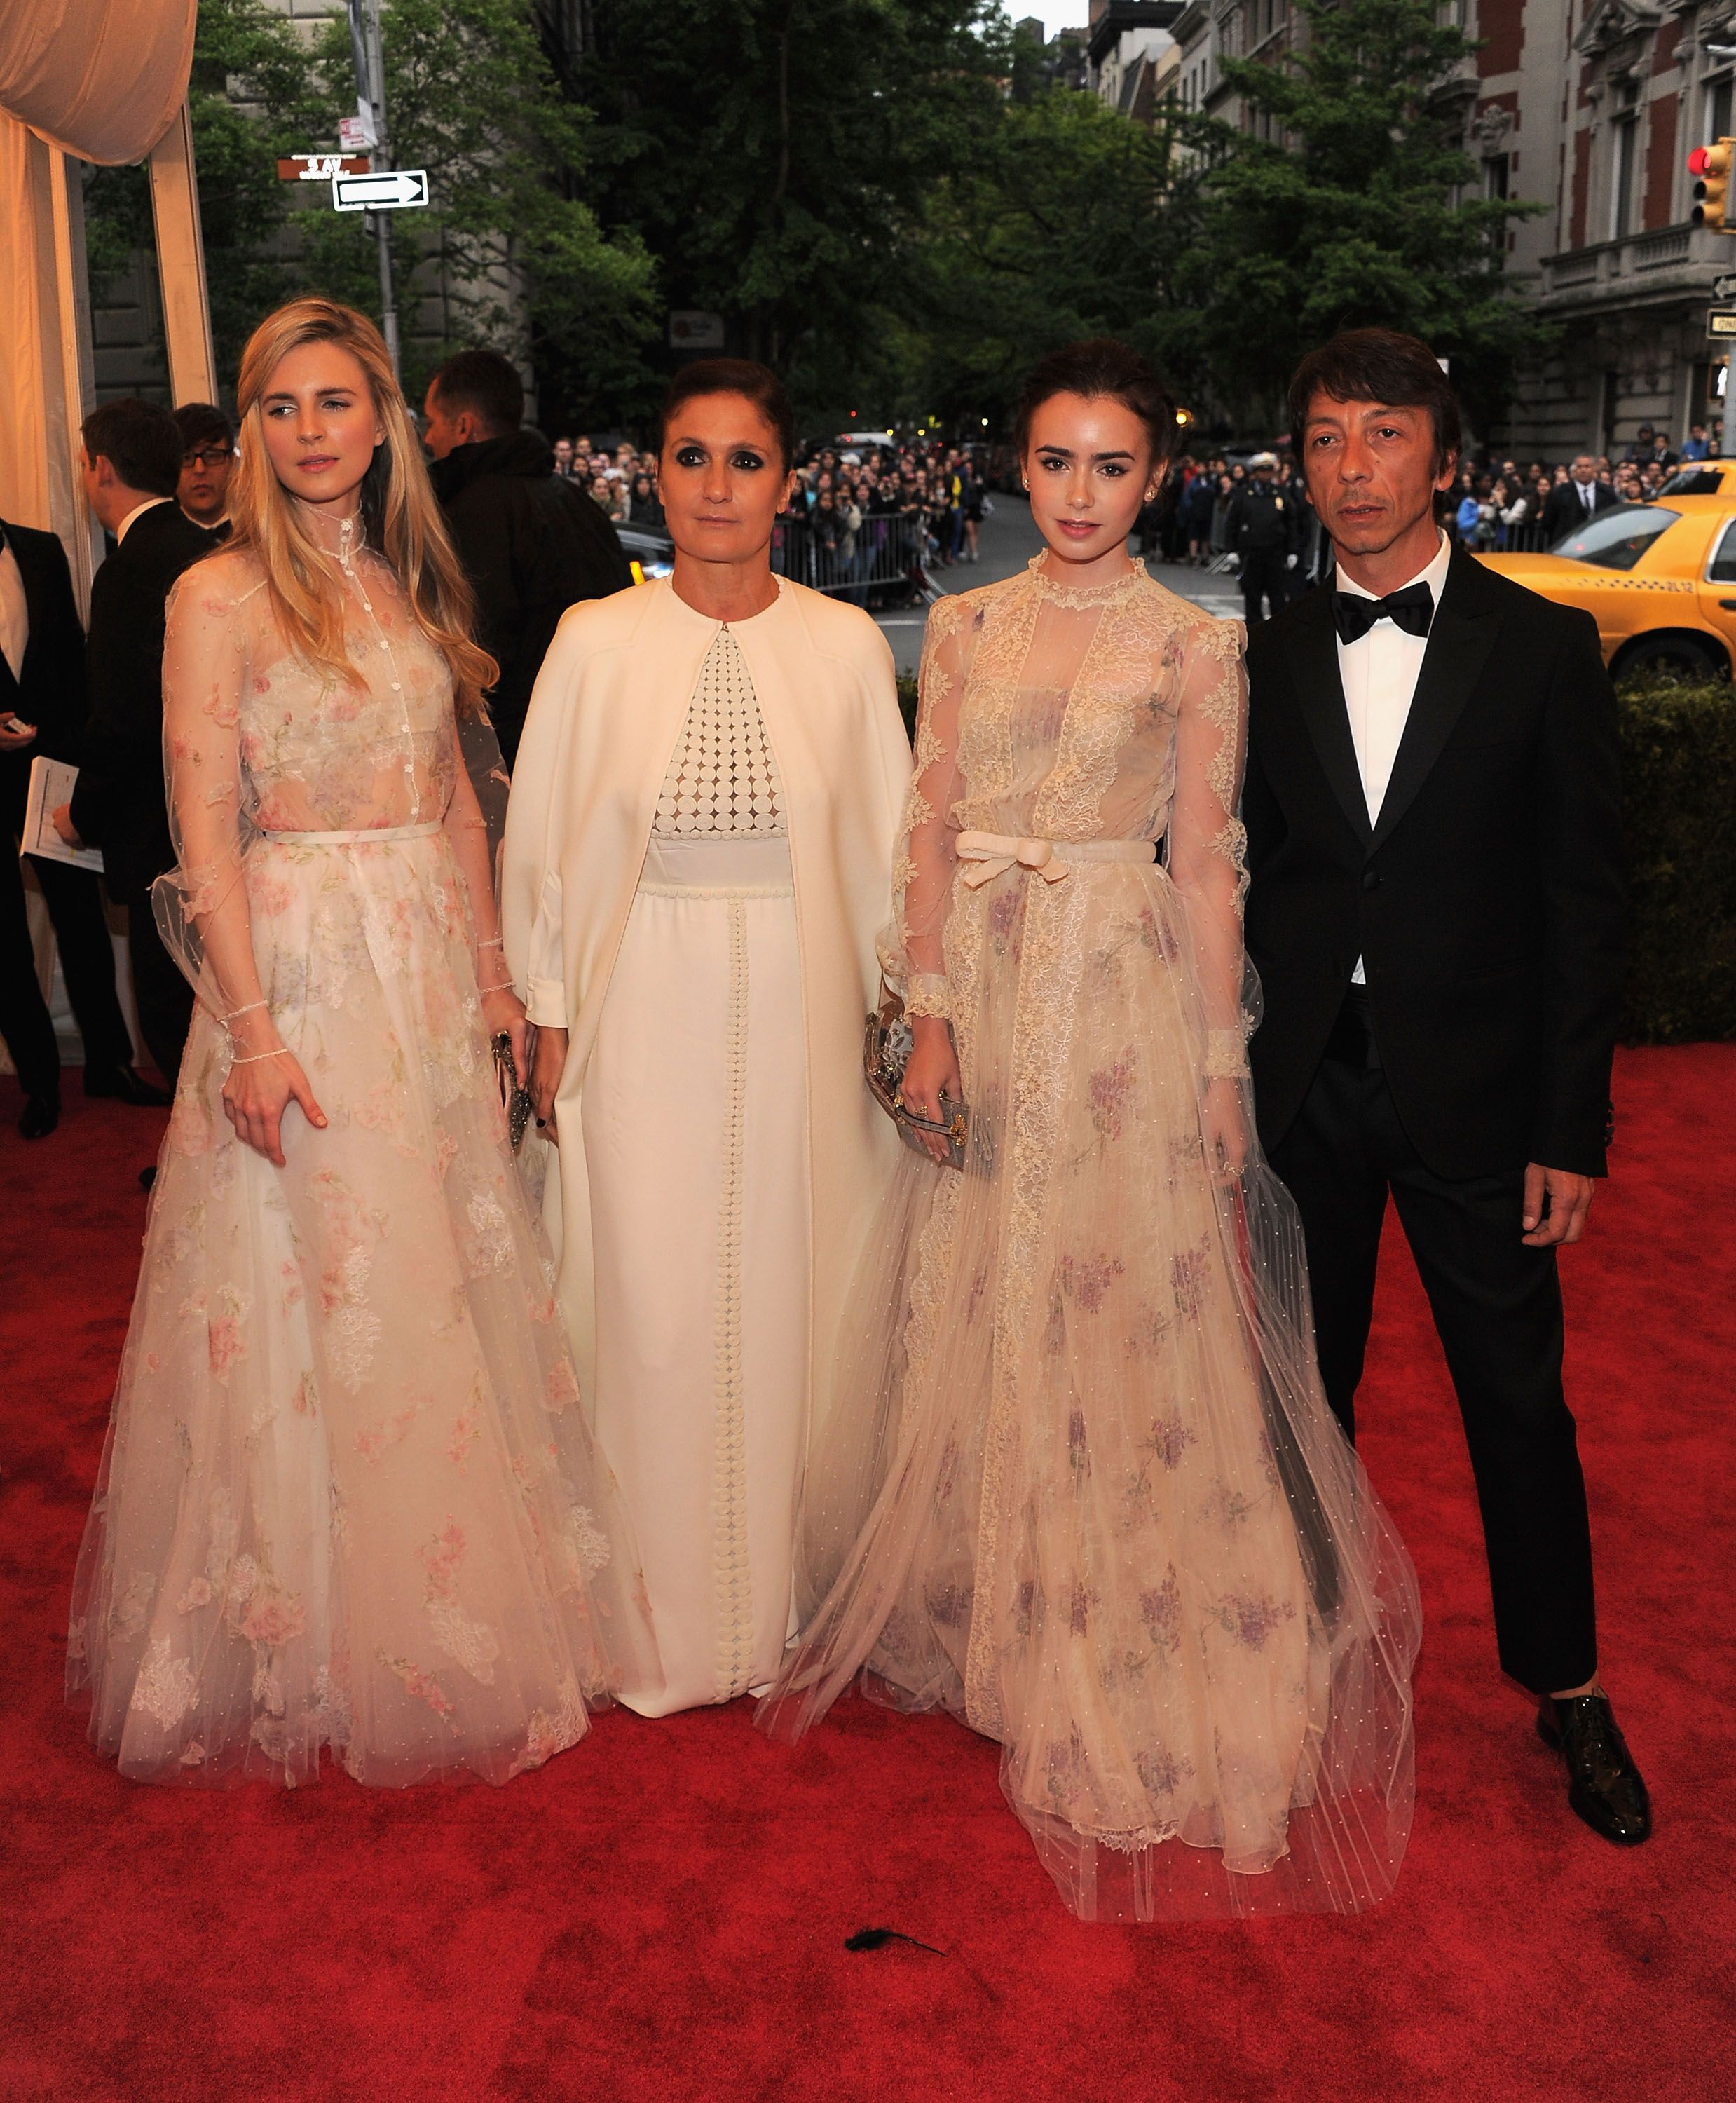 Creative Designers Maria Grazia Chiuri and Pierpaolo Piccioli with Birt Marling and Lily Collins at the Met Ball, both wearing Valentino Haute Couture gowns from SS 2012